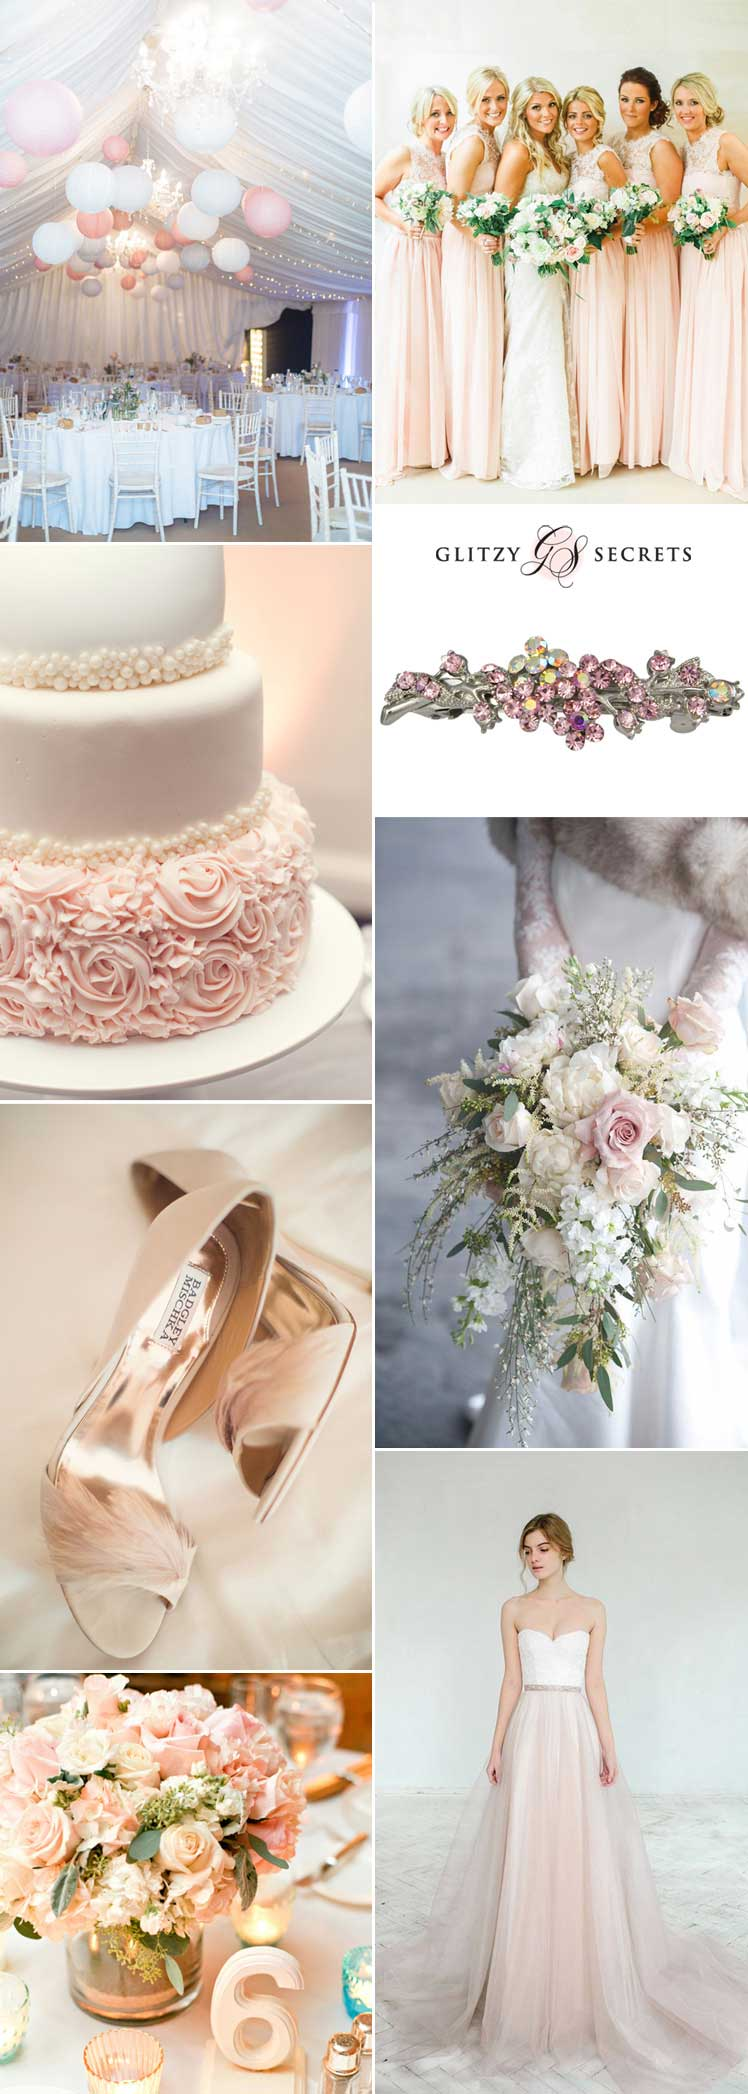 elegant ivory and blush wedding inspiration